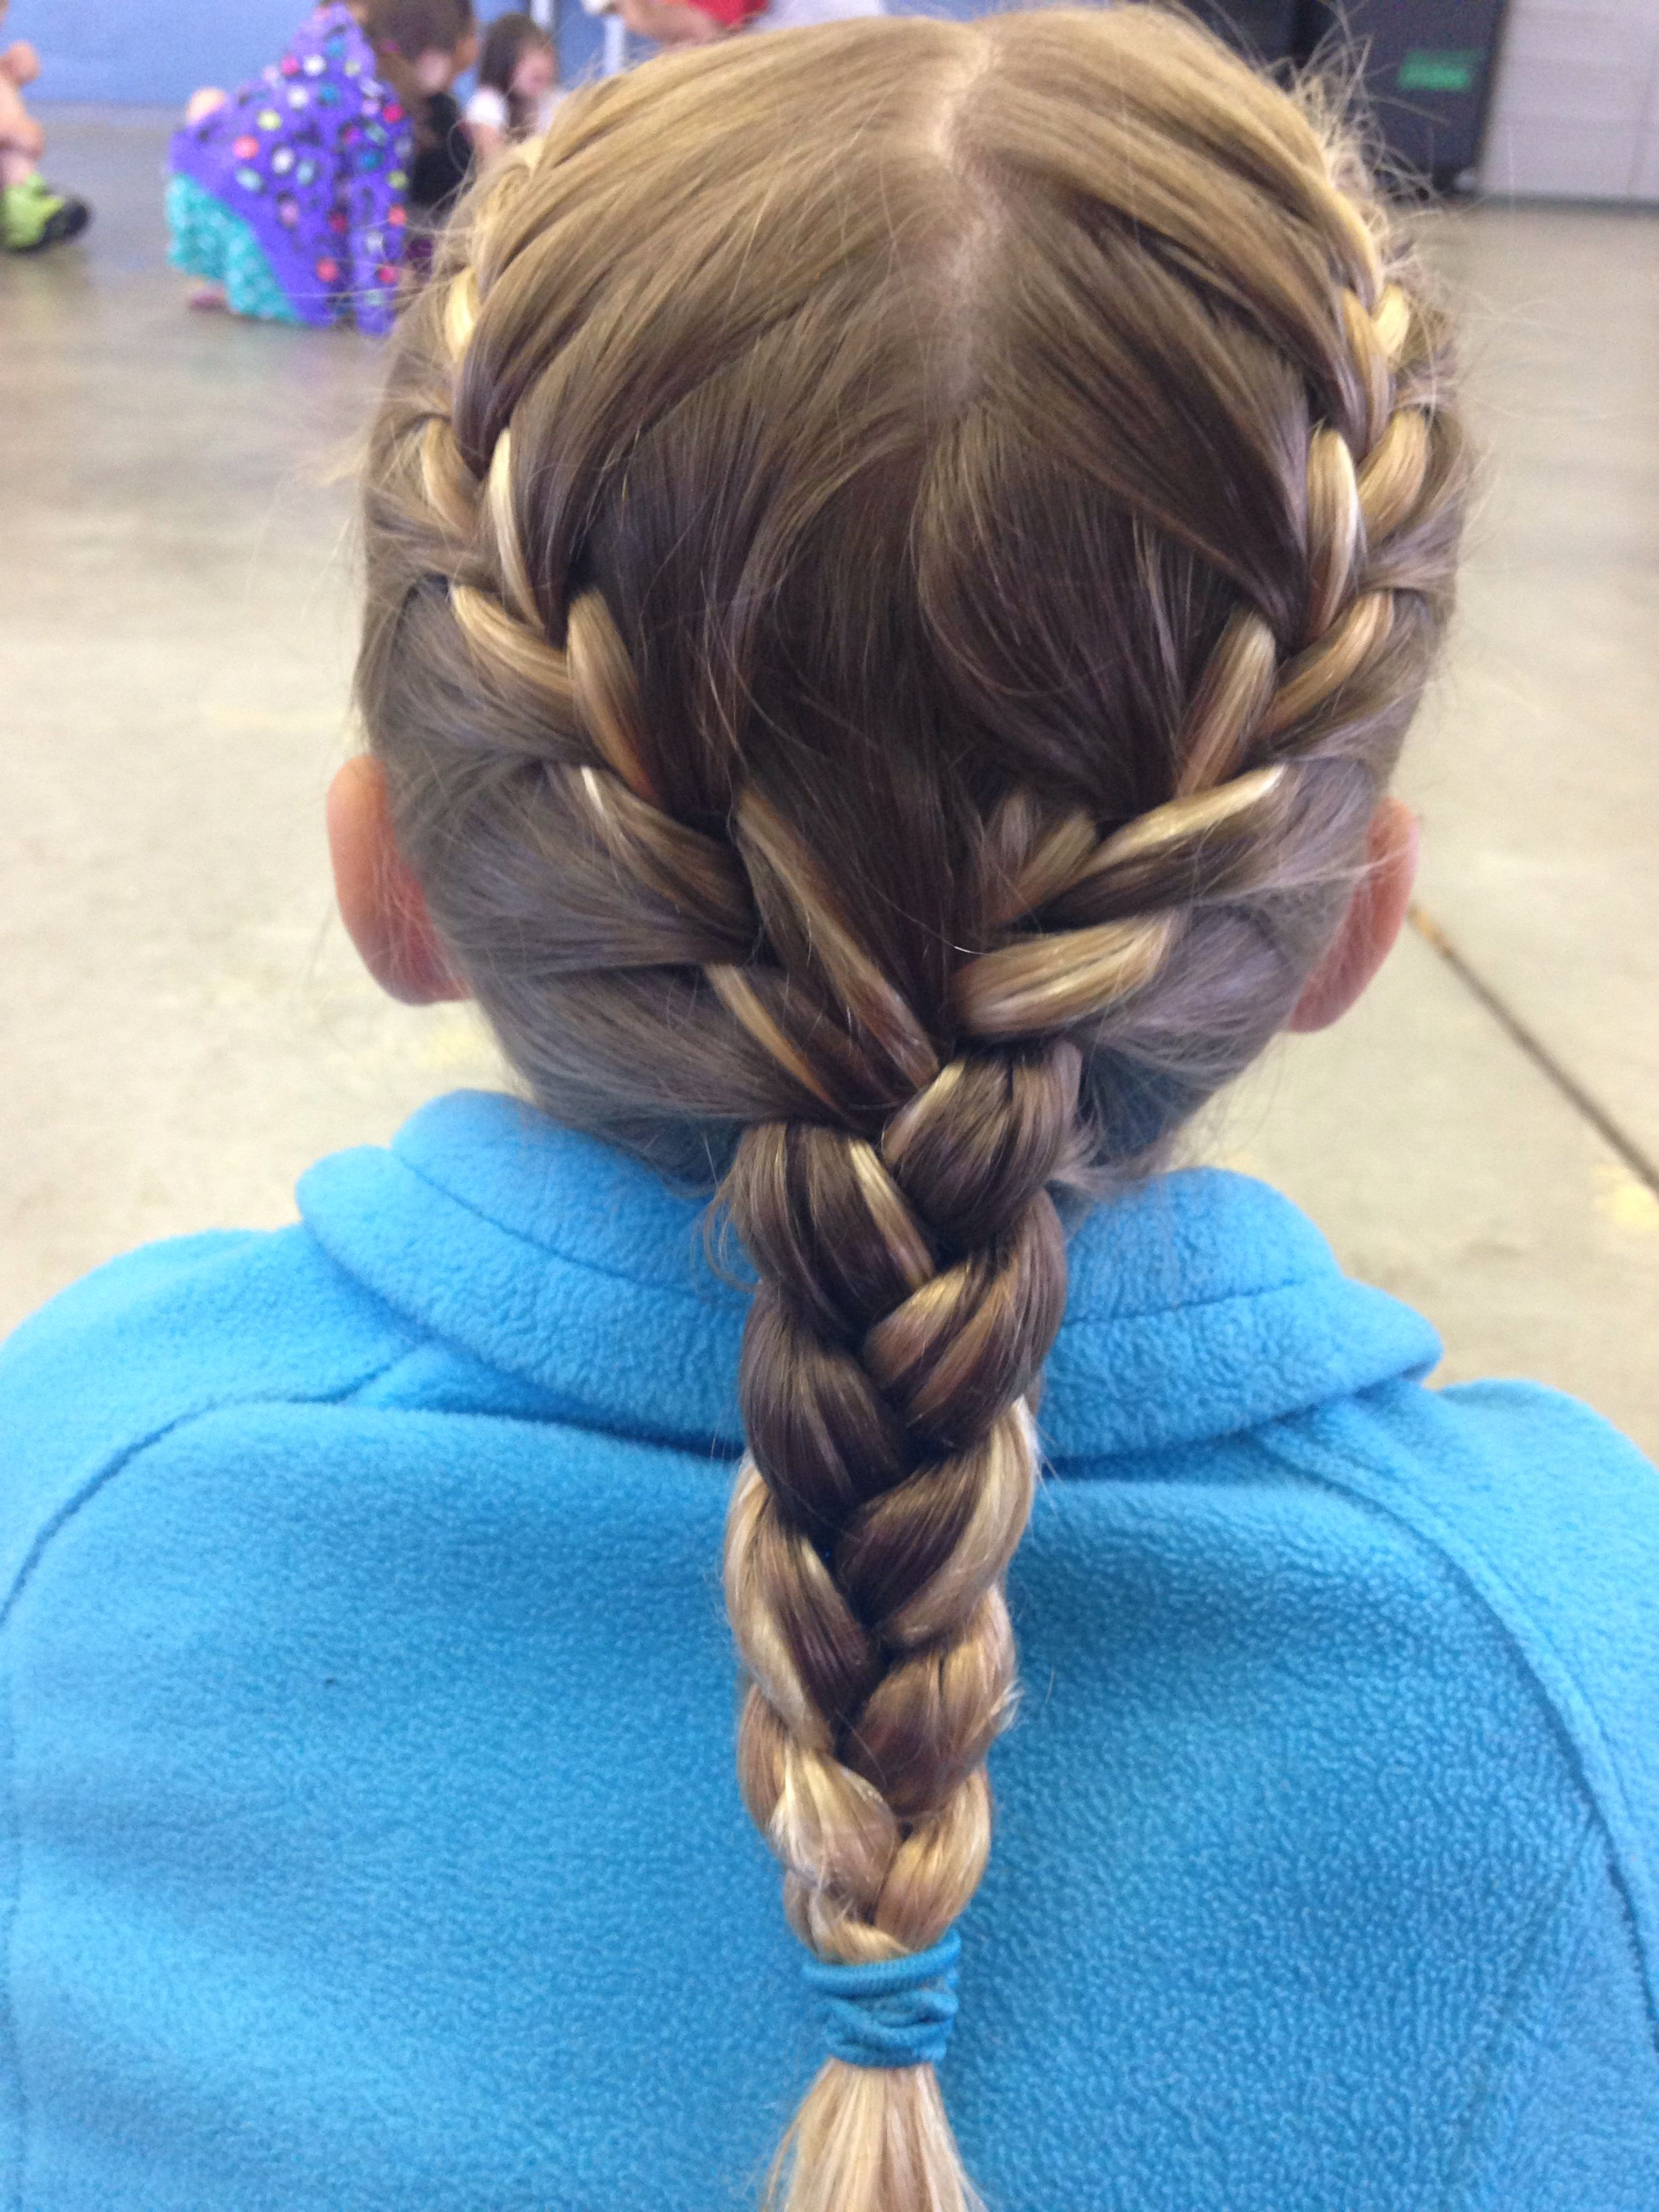 Two French Braids Into One Braid Braided Hairstyles Updo Two French Braids Hair Styles